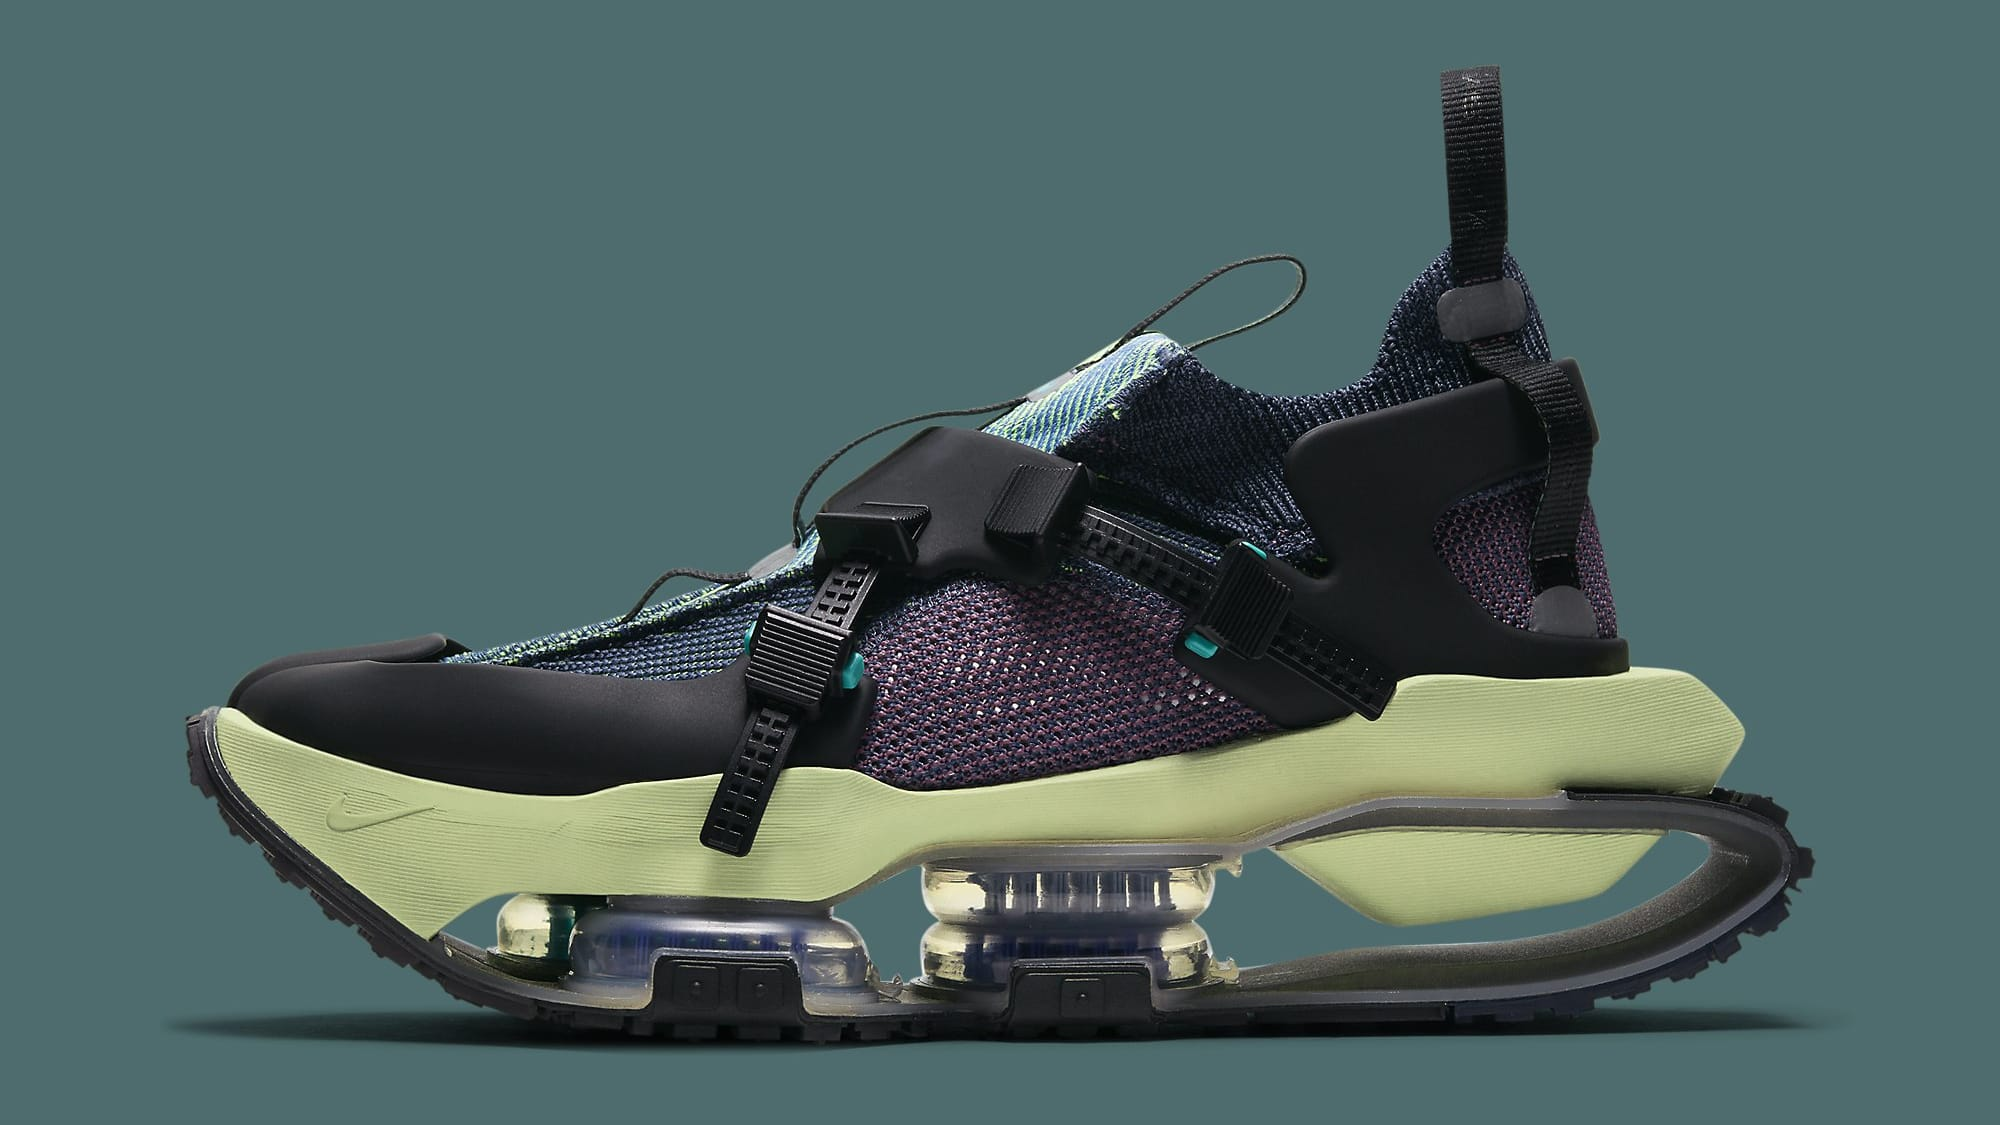 Nike ISPA Road Warrior 'Clear Jade' CW9410-400 Lateral